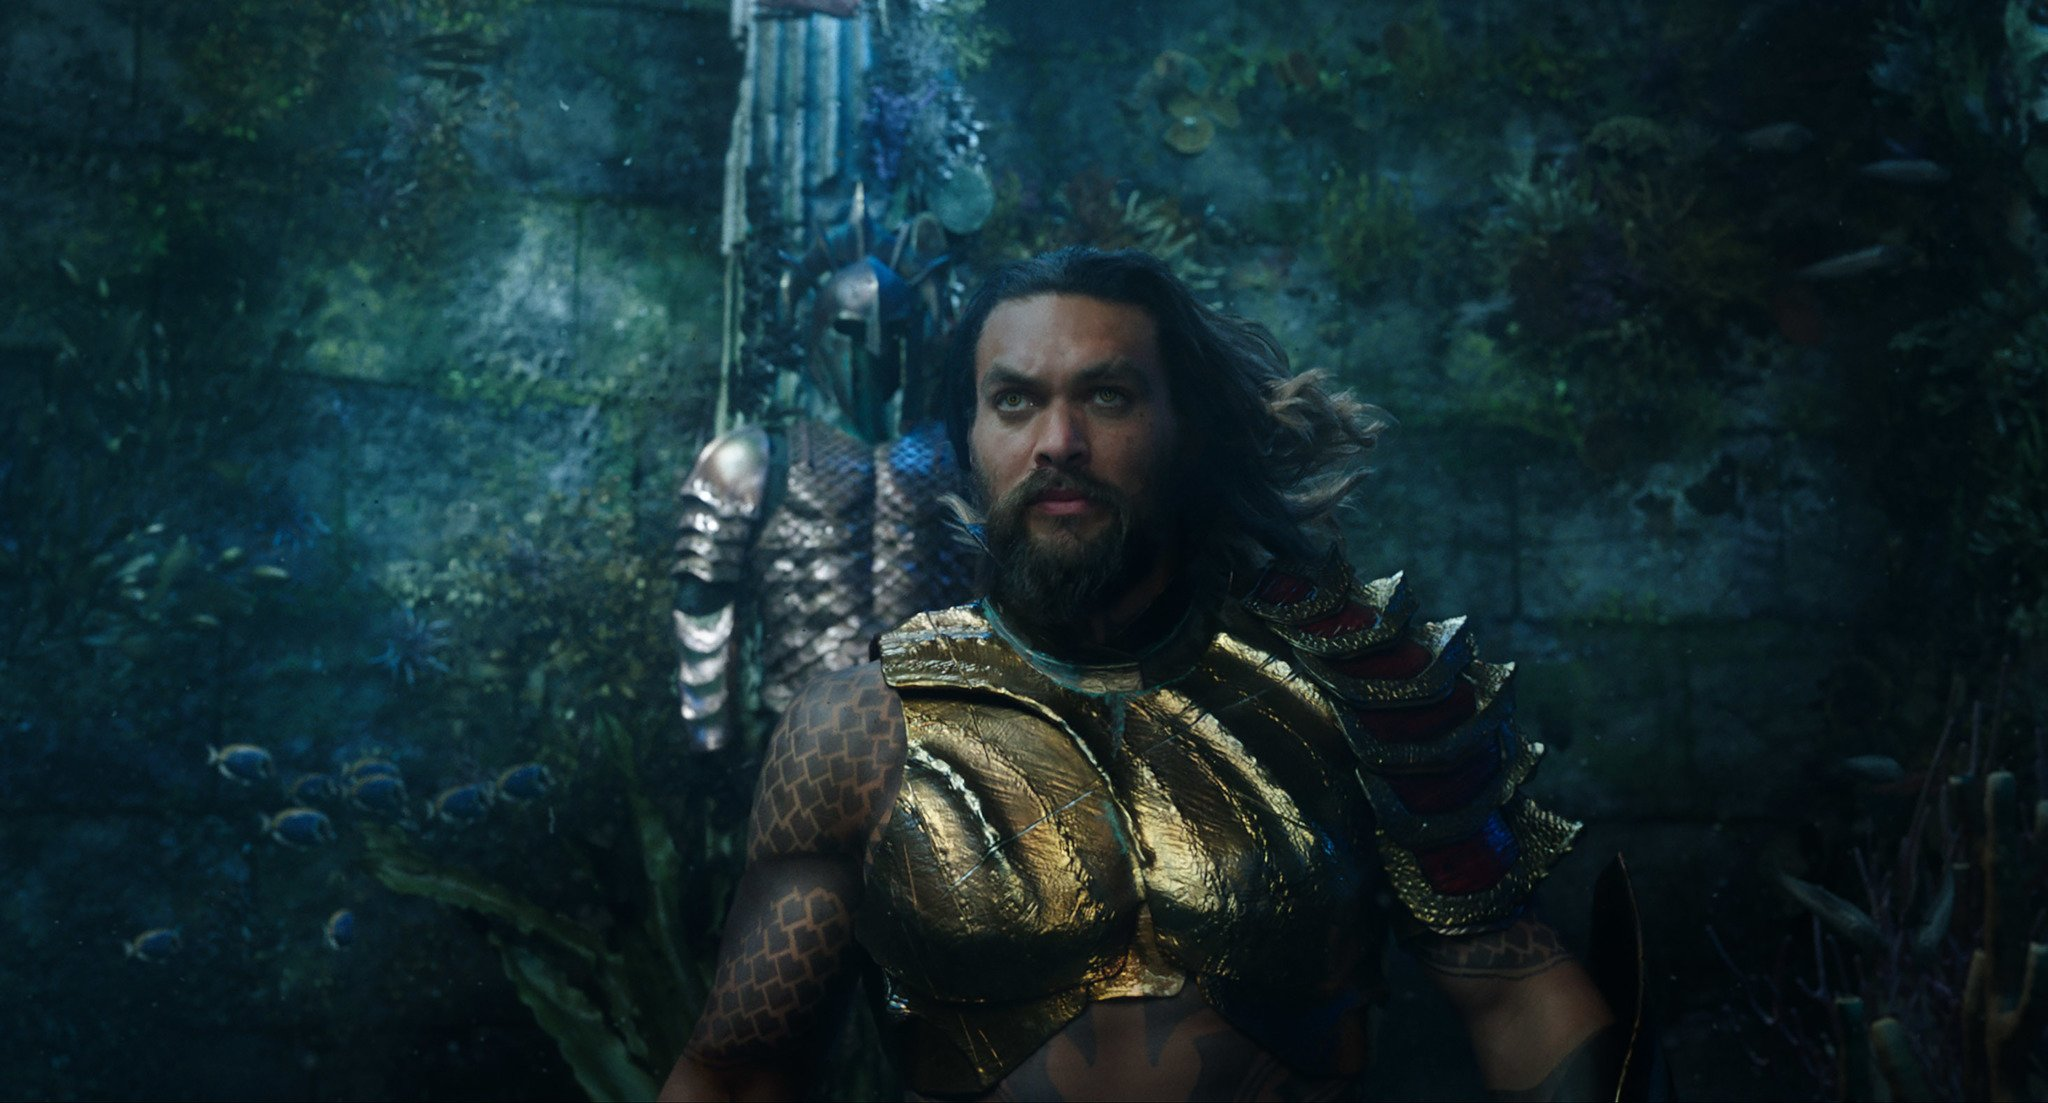 'Aquaman' Review: James Wan Can't Salvage a Wannabe 'Thor' Movie